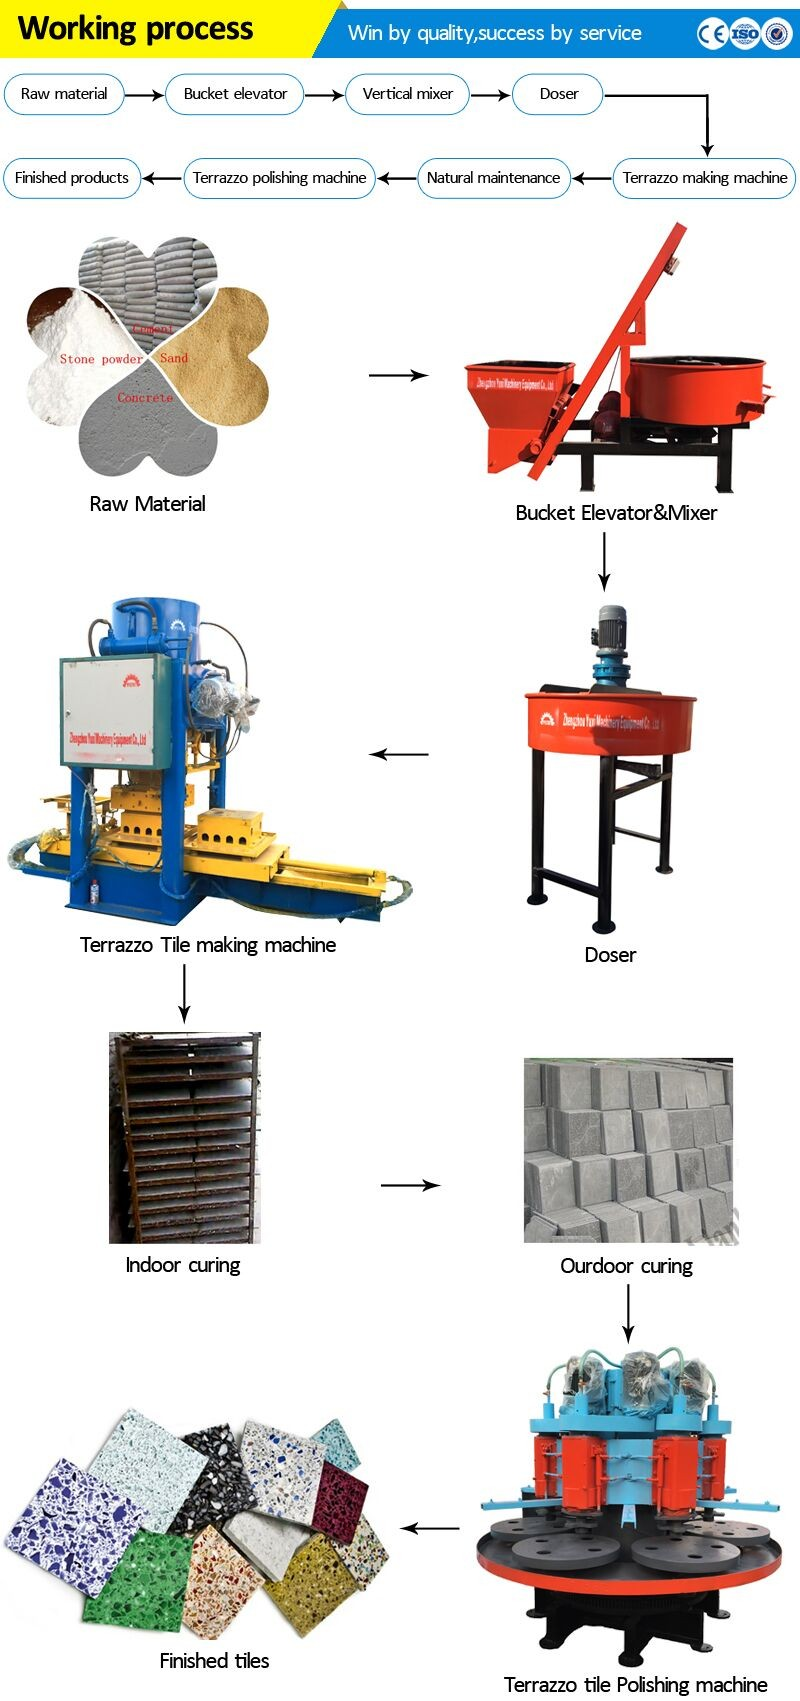 2016 featured products terrazzo tile moulding machinetile making 2016 featured products terrazzo tile moulding machinetile making machinehydraulic press cement automatic dailygadgetfo Image collections